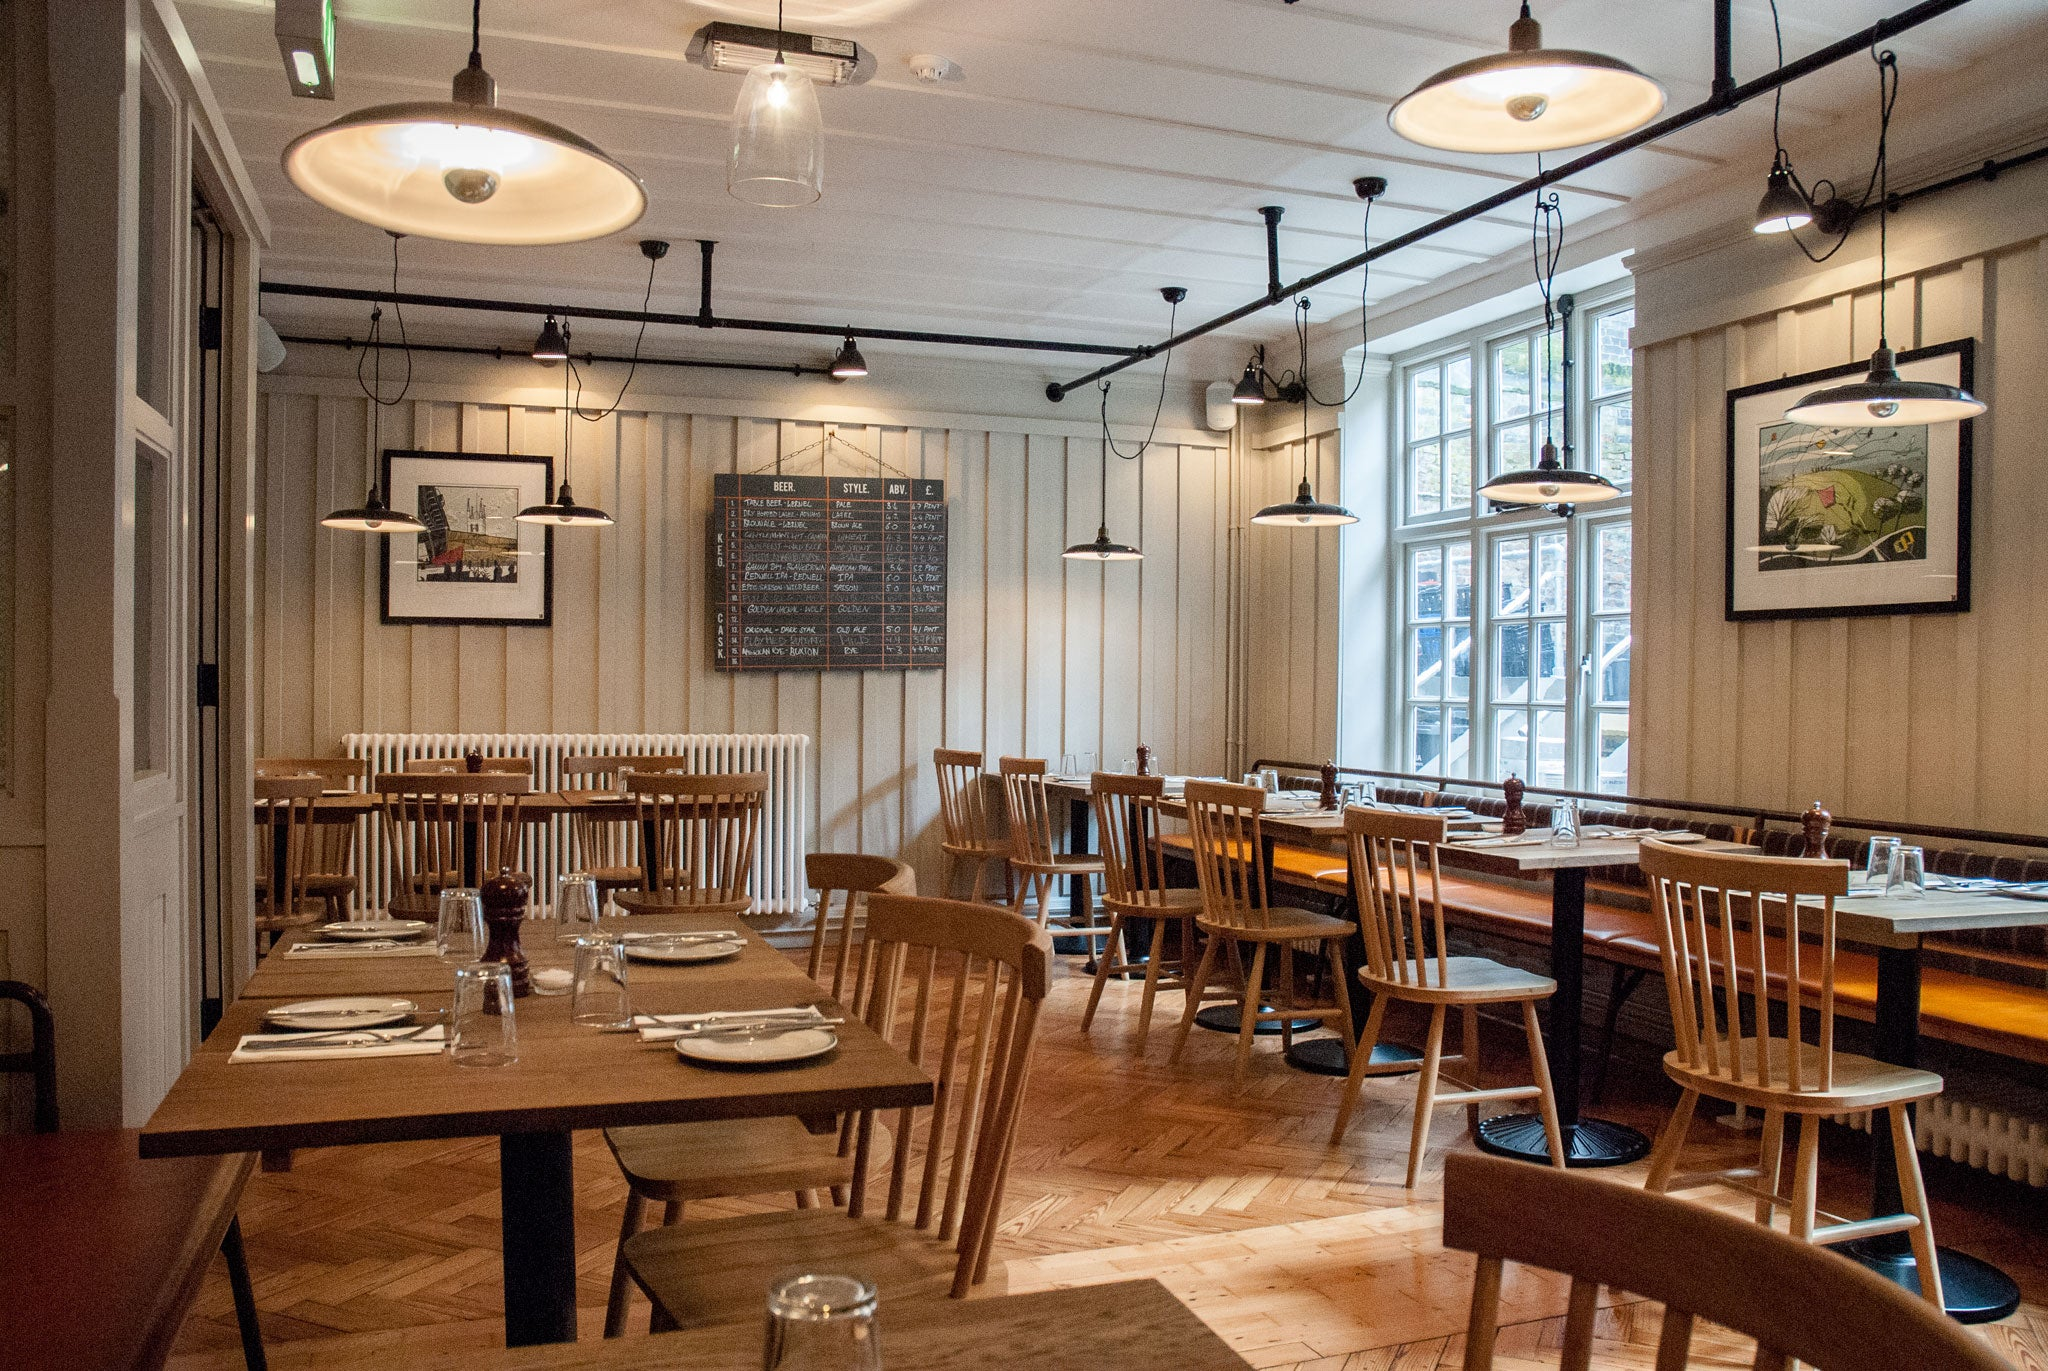 Pint shop restaurant review a great drinks menu outstanding food and no queues the - Private dining rooms cambridge ...